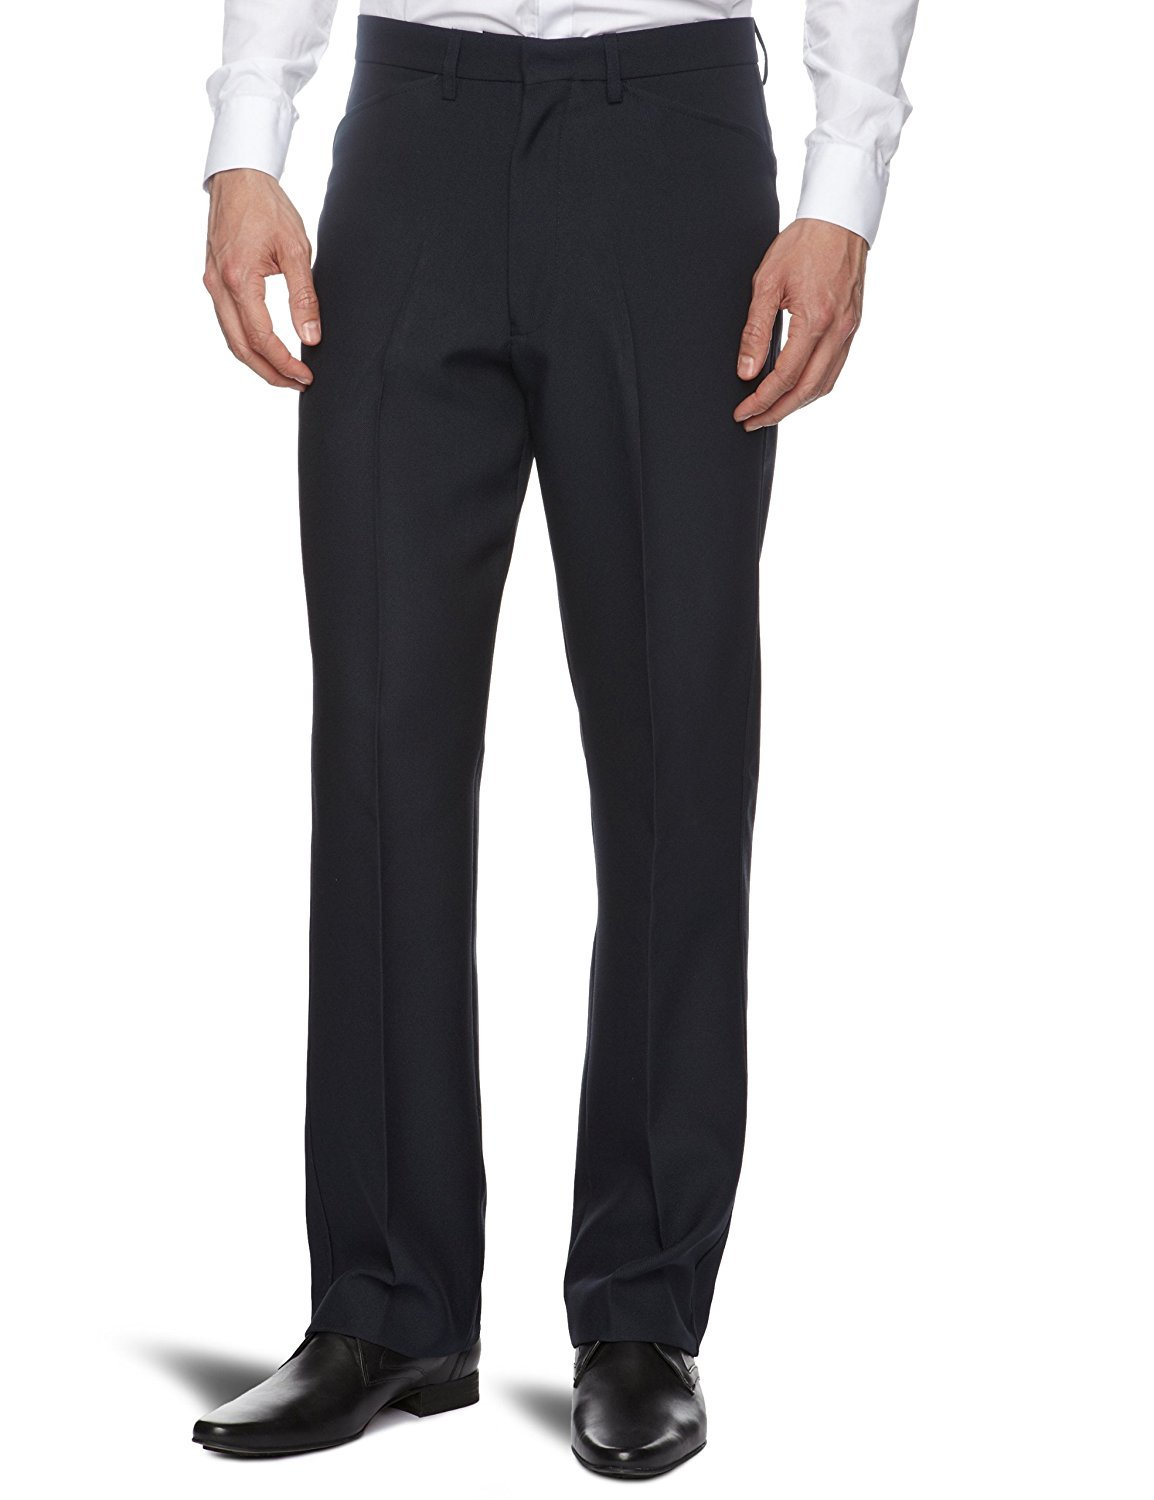 Farah Hopsack Straight Trousers - Stockpoint Apparel Outlet